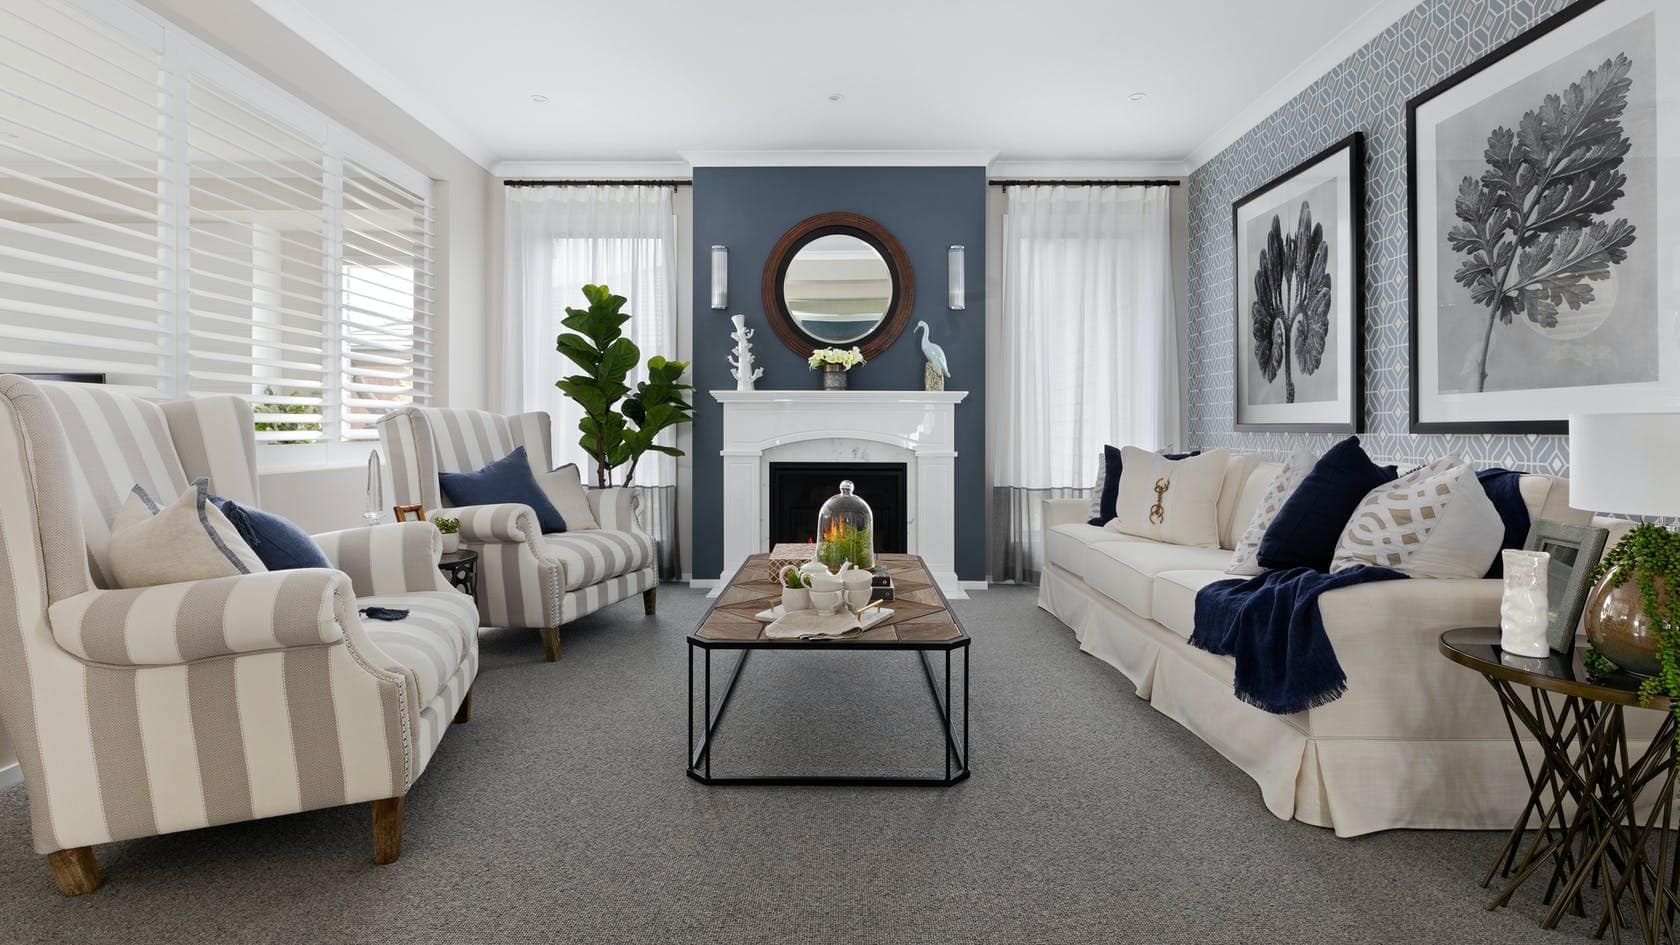 formal hamptons living room with striped grey and white armchairs and fireplace with mirror above